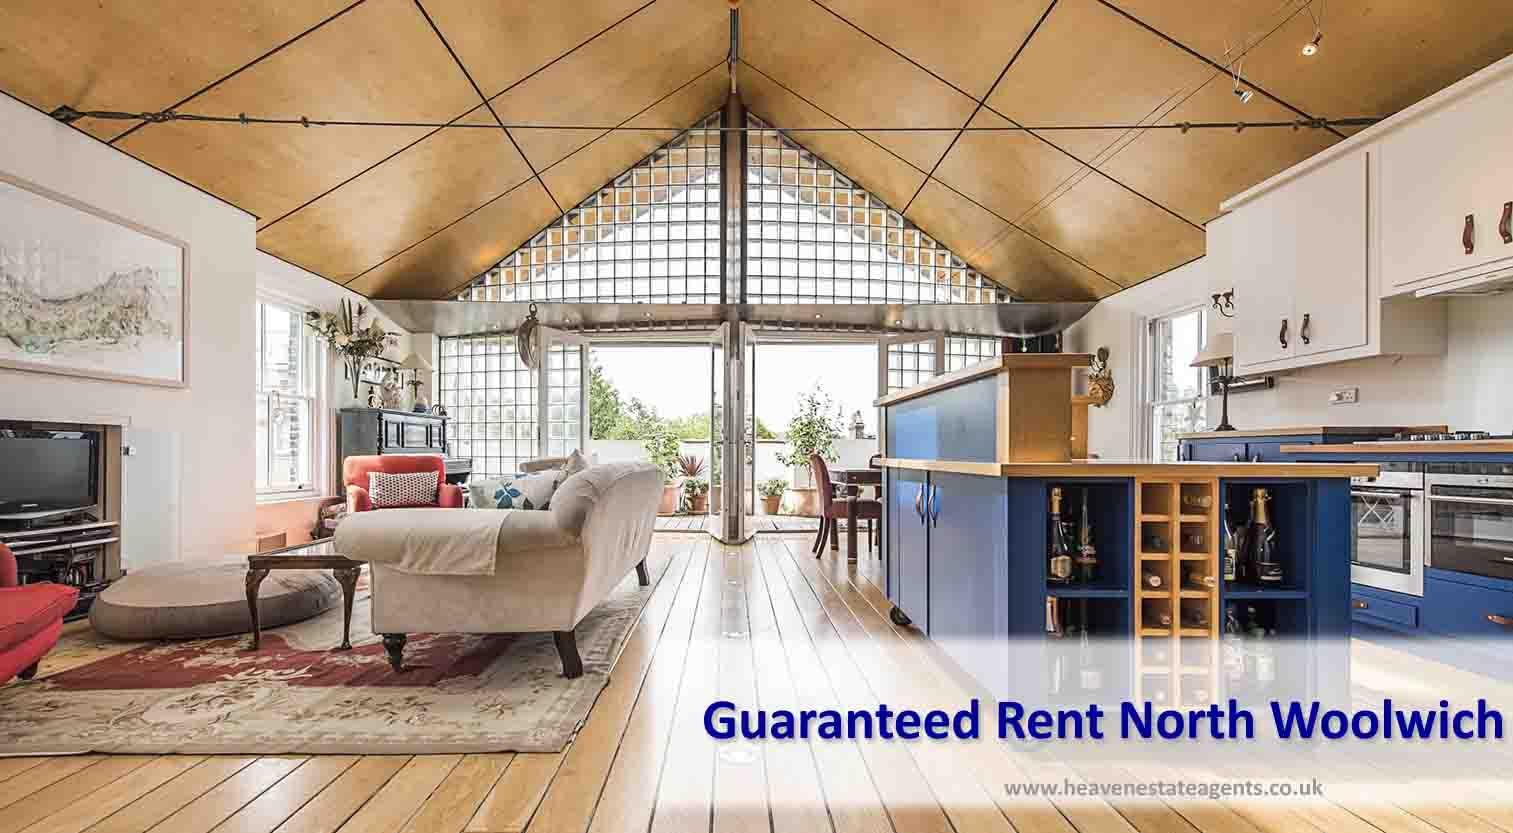 Guaranteed Rent North Woolwich